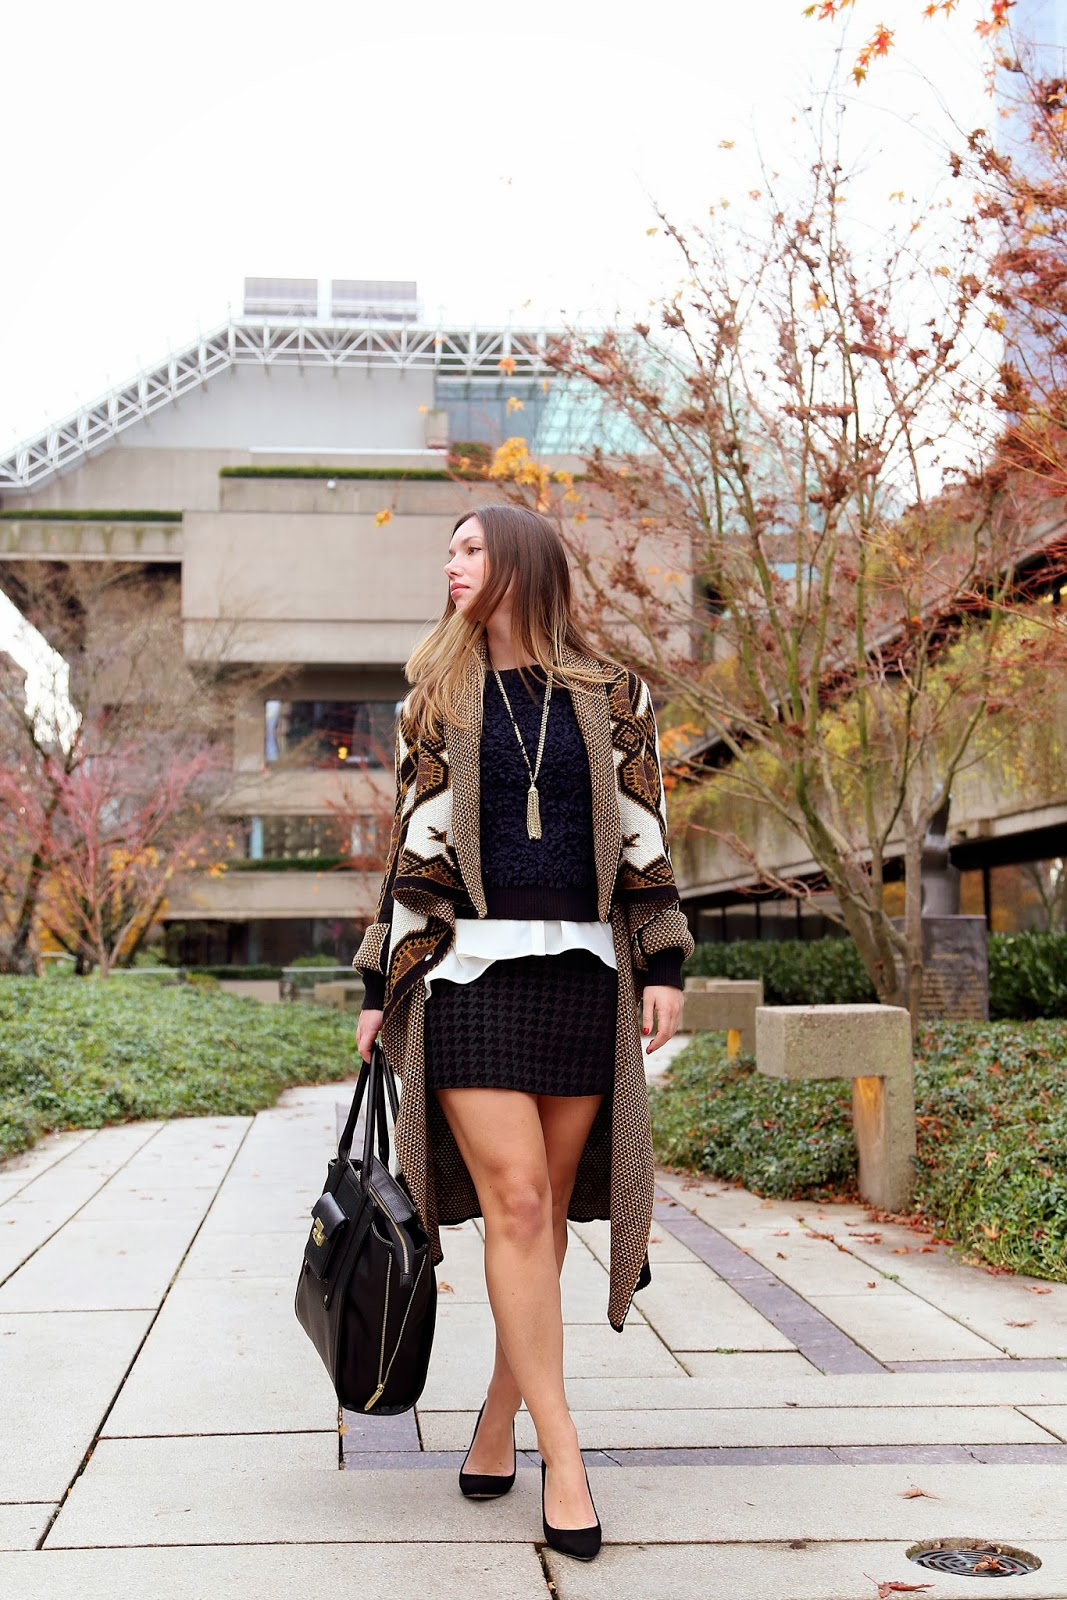 to vogue or bust, vancouver style blog, vancouver fashion blog, alexandra grant, canadian fashion blog, vancouver fashion, rachel roy sweater coat, rachel roy navy sweater, rachel roy houndstooth mini skirt, rachel roy blouse, j.crew heels, phillip lim for target bag, holiday style, party style